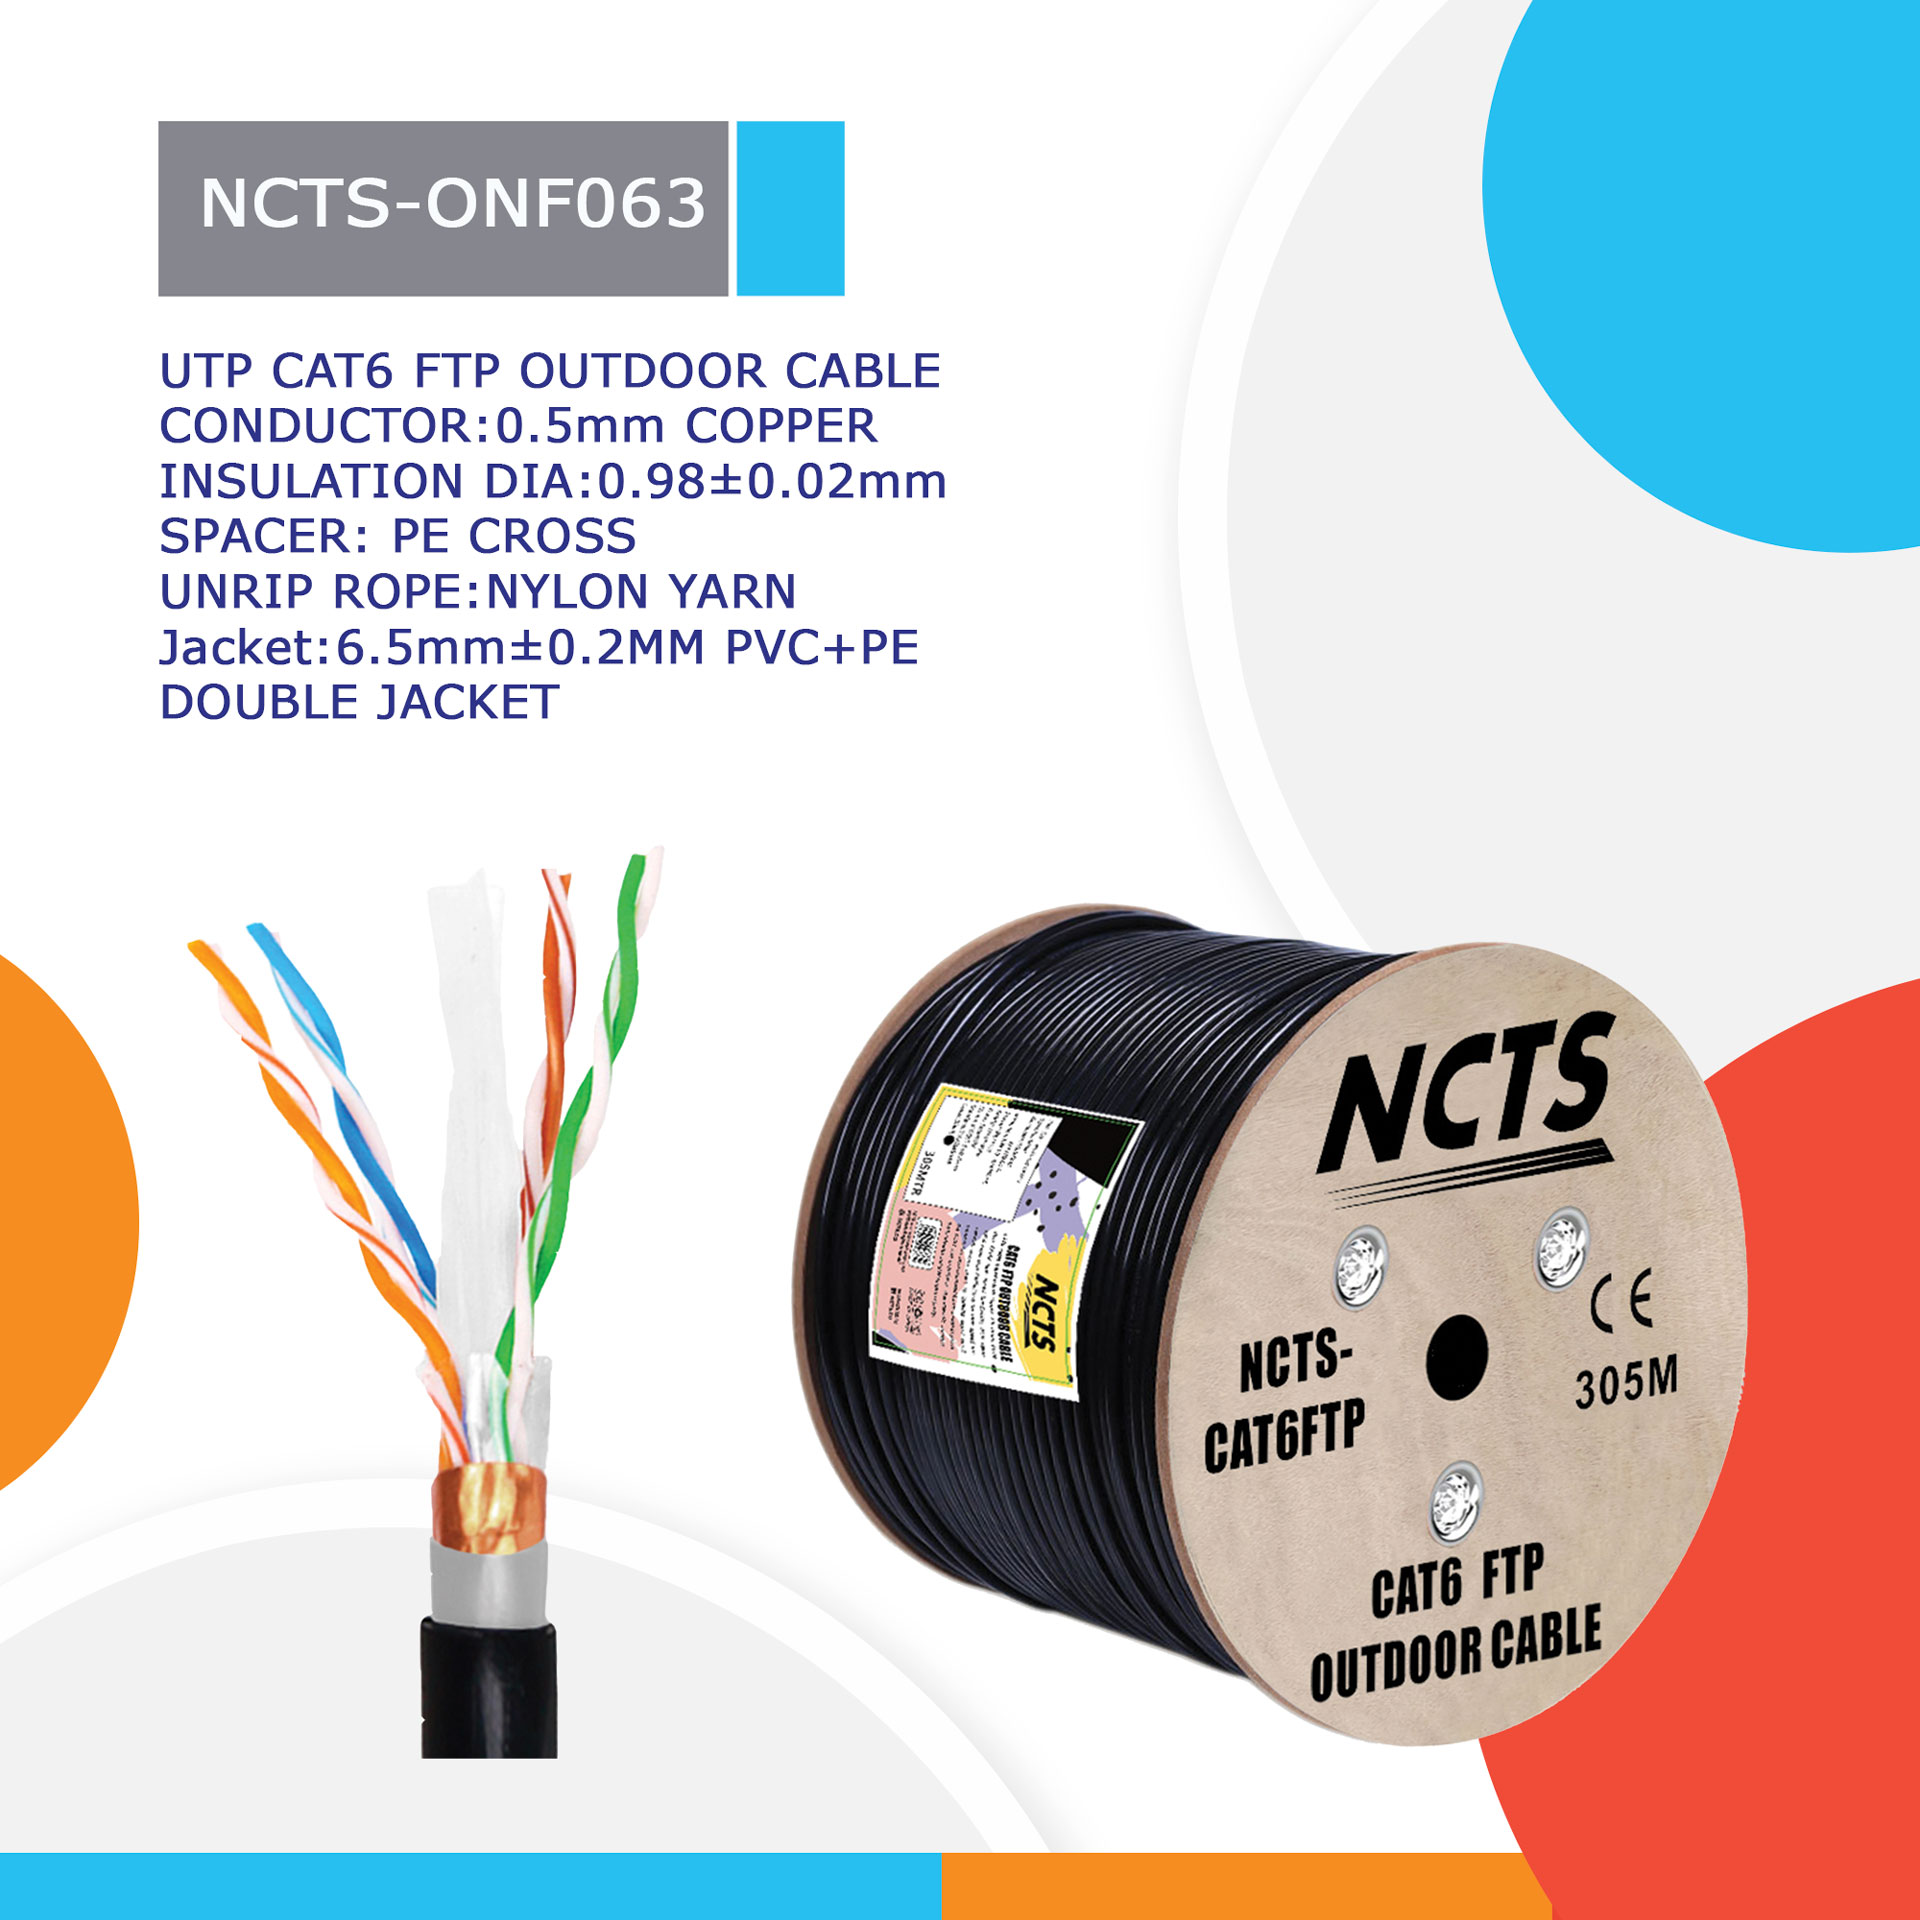 NCTS-ONF063